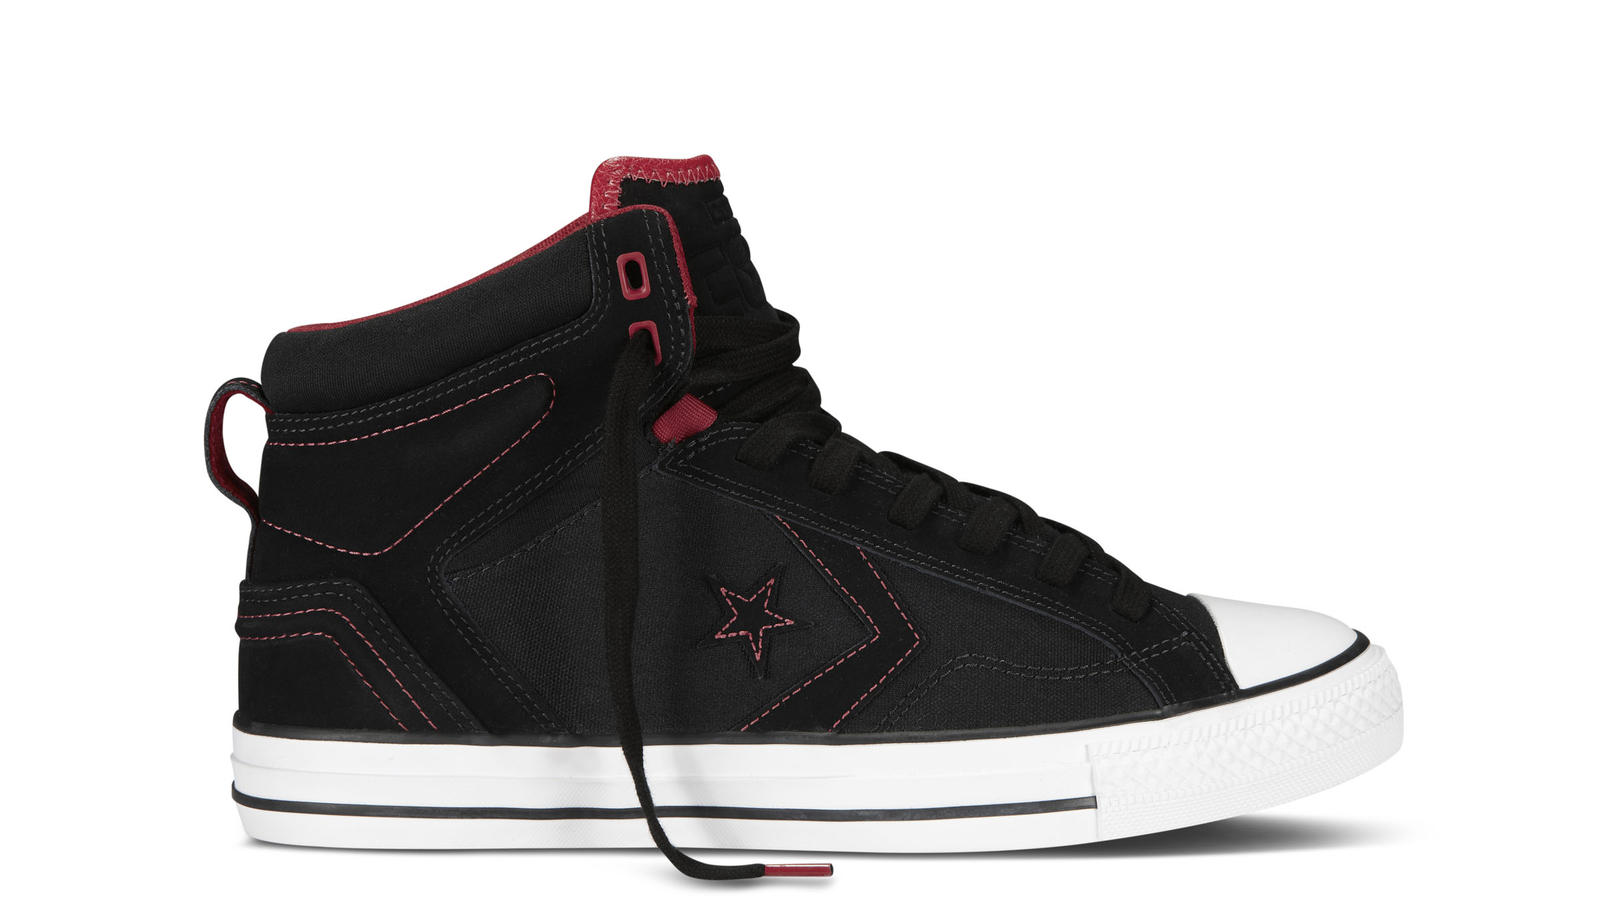 Sneaker LockerFootaction Converse At Foot Cons Collection Launches S4jLq5R3Ac